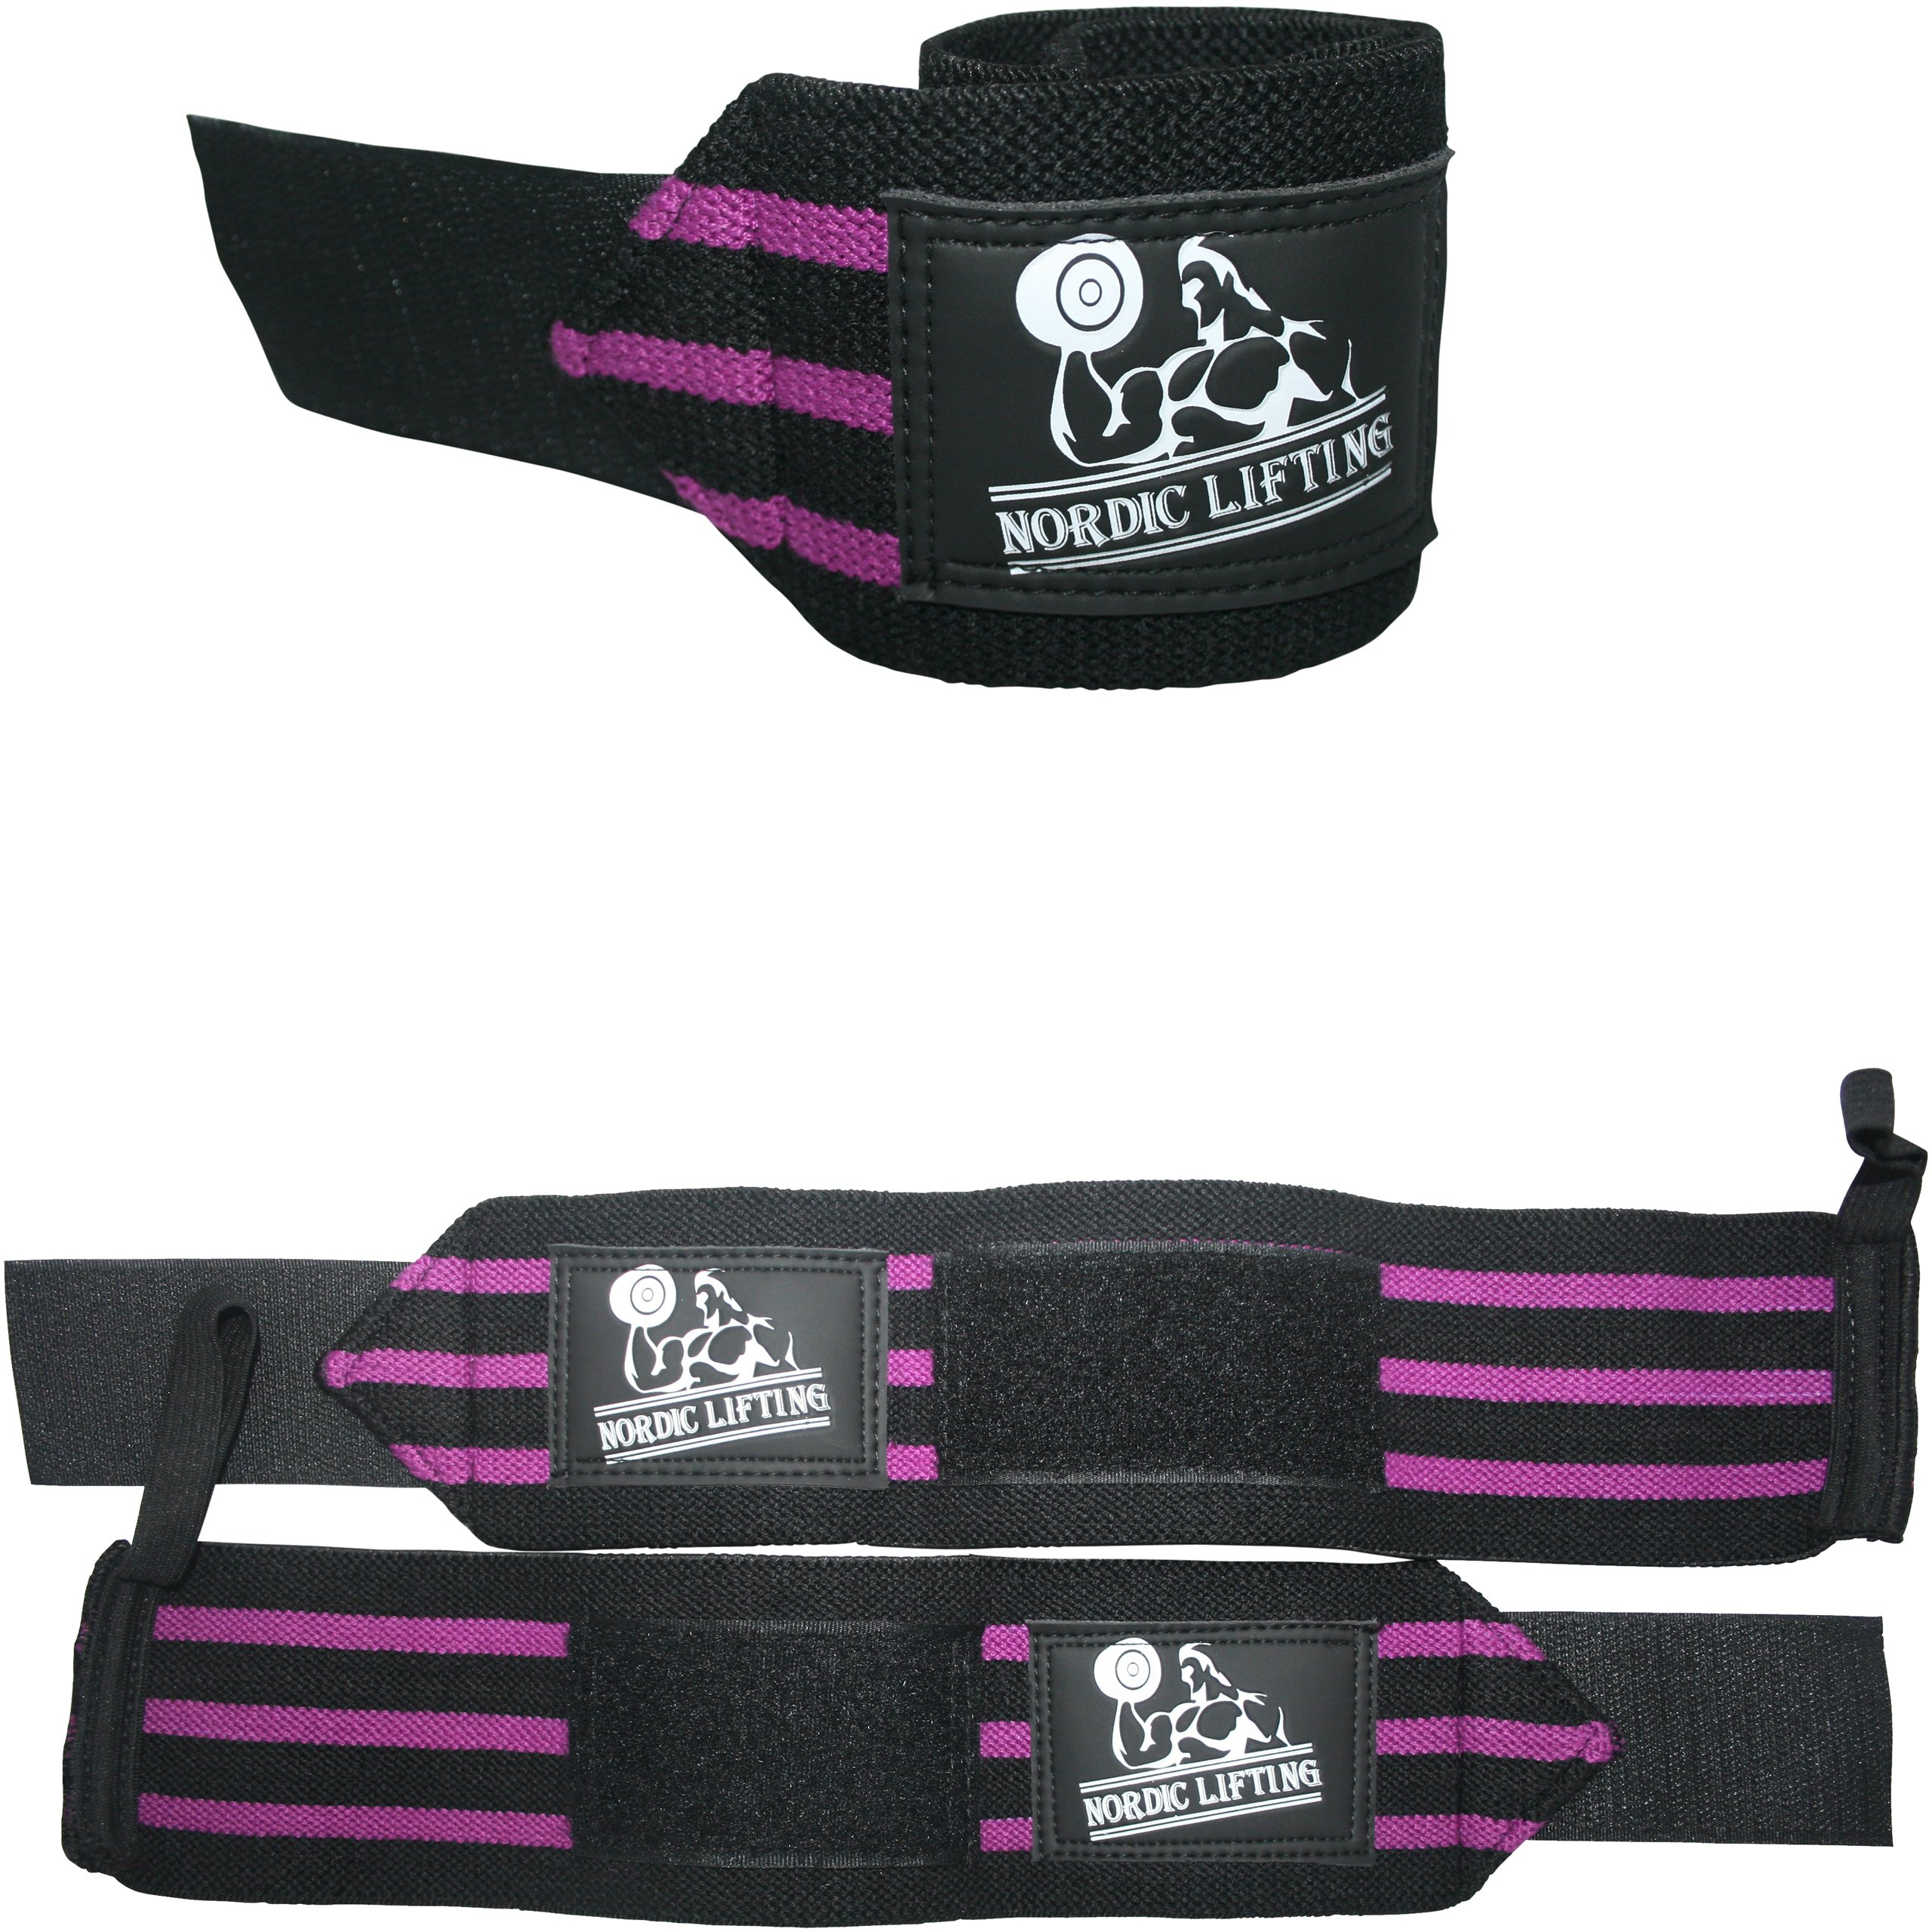 Wrist Wraps (1 Pair/2 Wraps) for Weightlifting/Cross Training/Powerlifting/Bodybuilding -Women & Men-Premium Quality Equipment & Accessories Avoid Injury During Weight Lifting-(Purple)-1 Year Warranty by Nordic Lifting